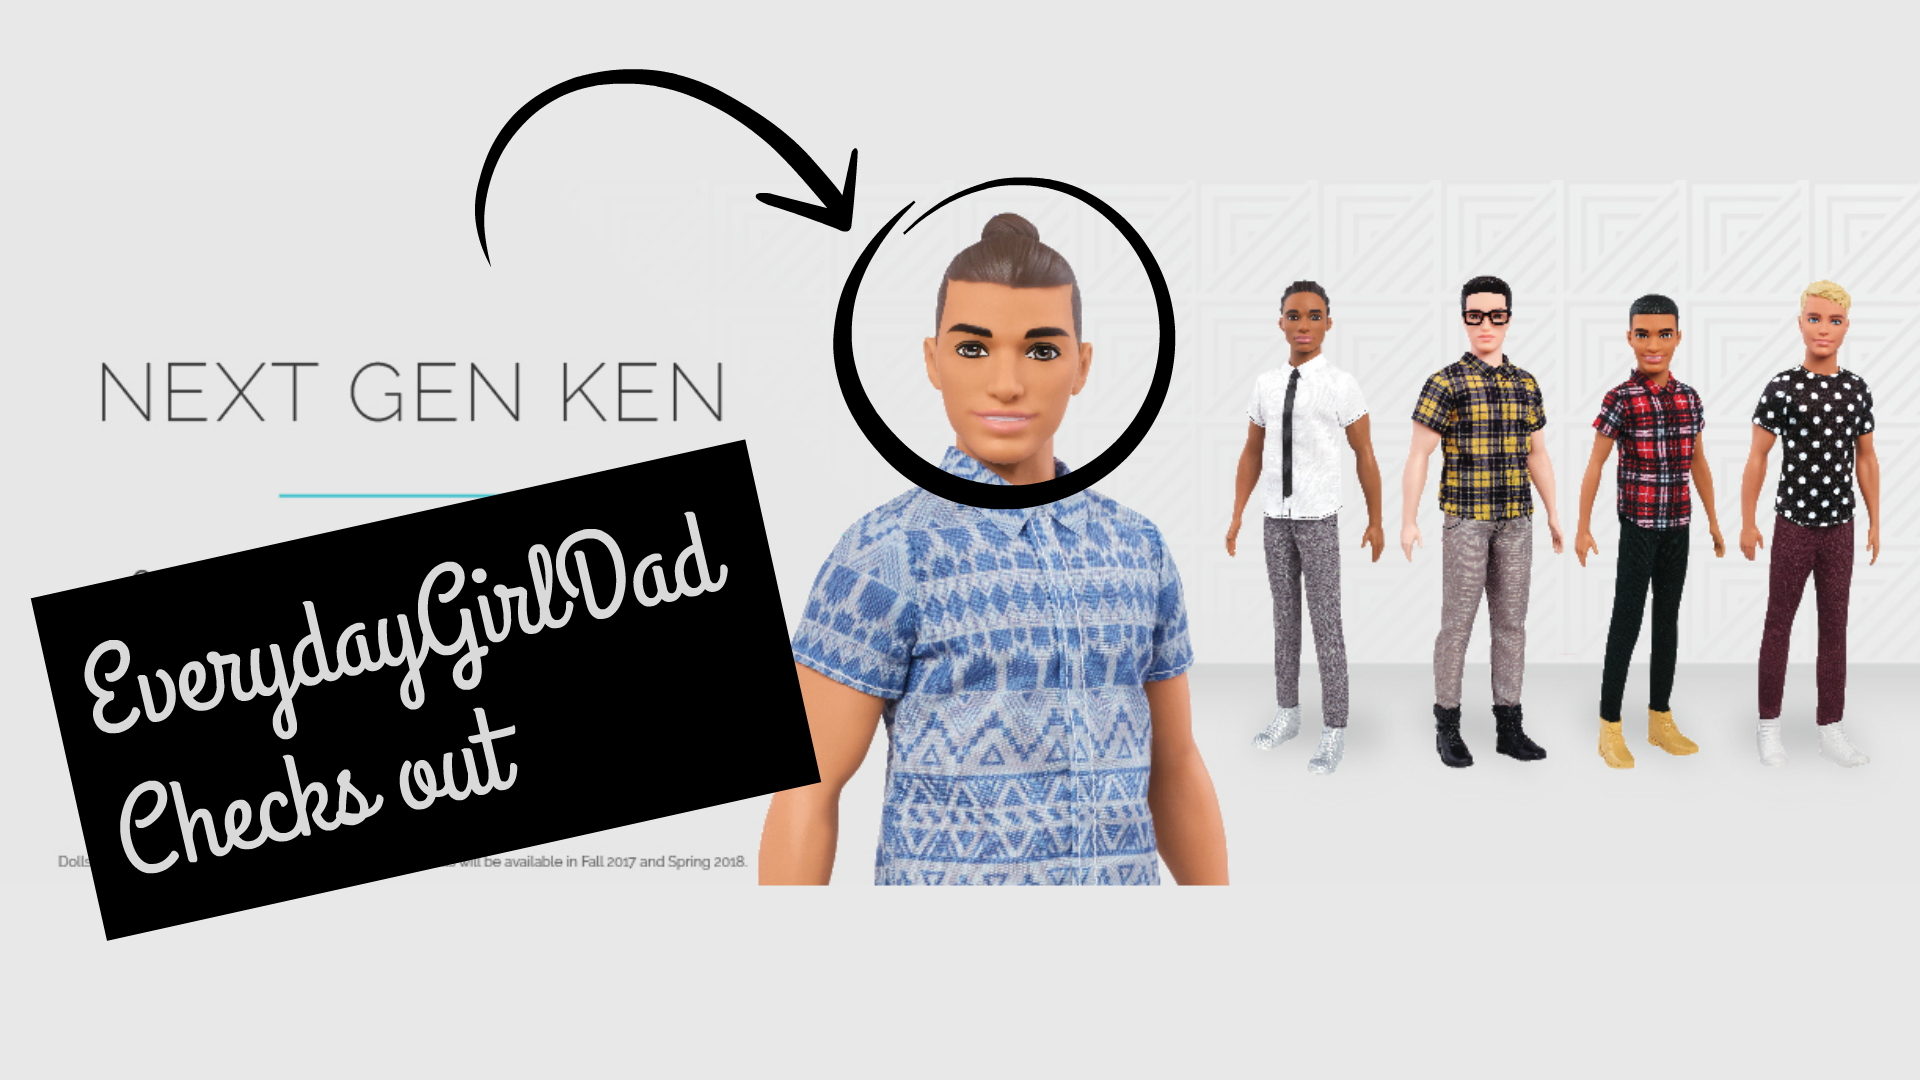 WHAT'S NEW & WHAT'S MISSING FROM THE NEW KEN DOLLS?